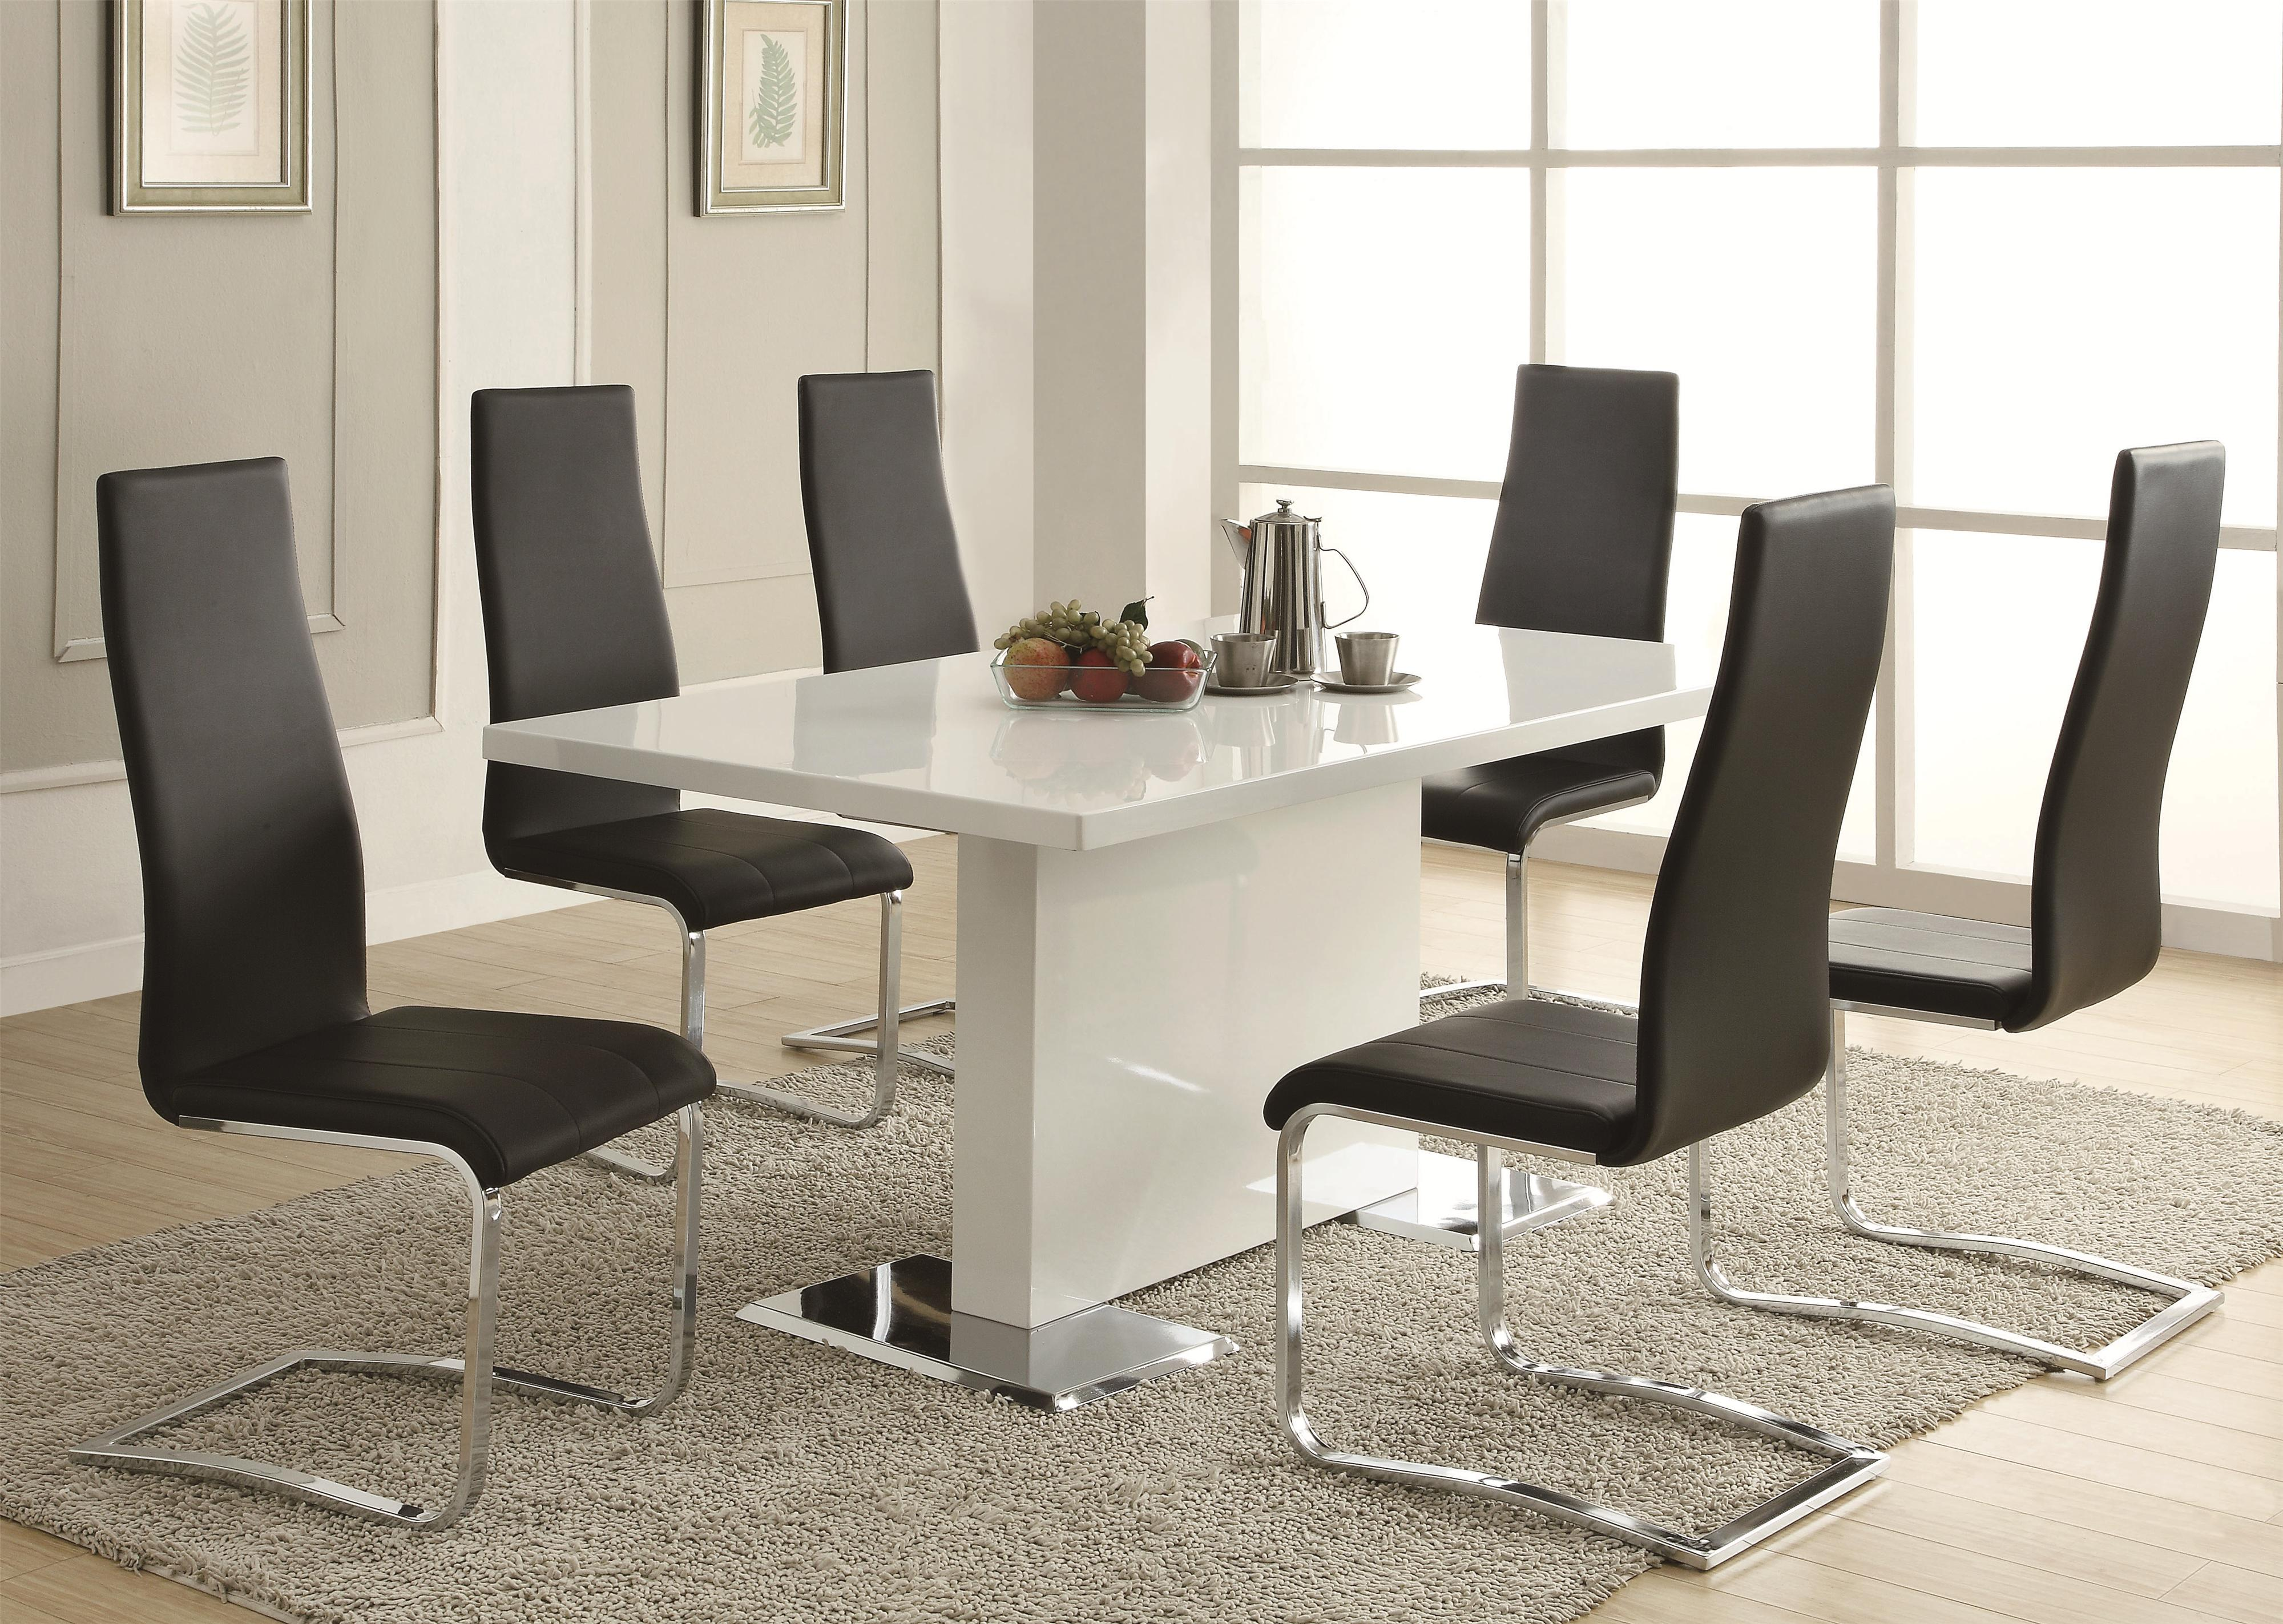 Contemporary contemporary dining room sets coaster modern dining contemporary dining room set with glass table -  coaster ifsvtow